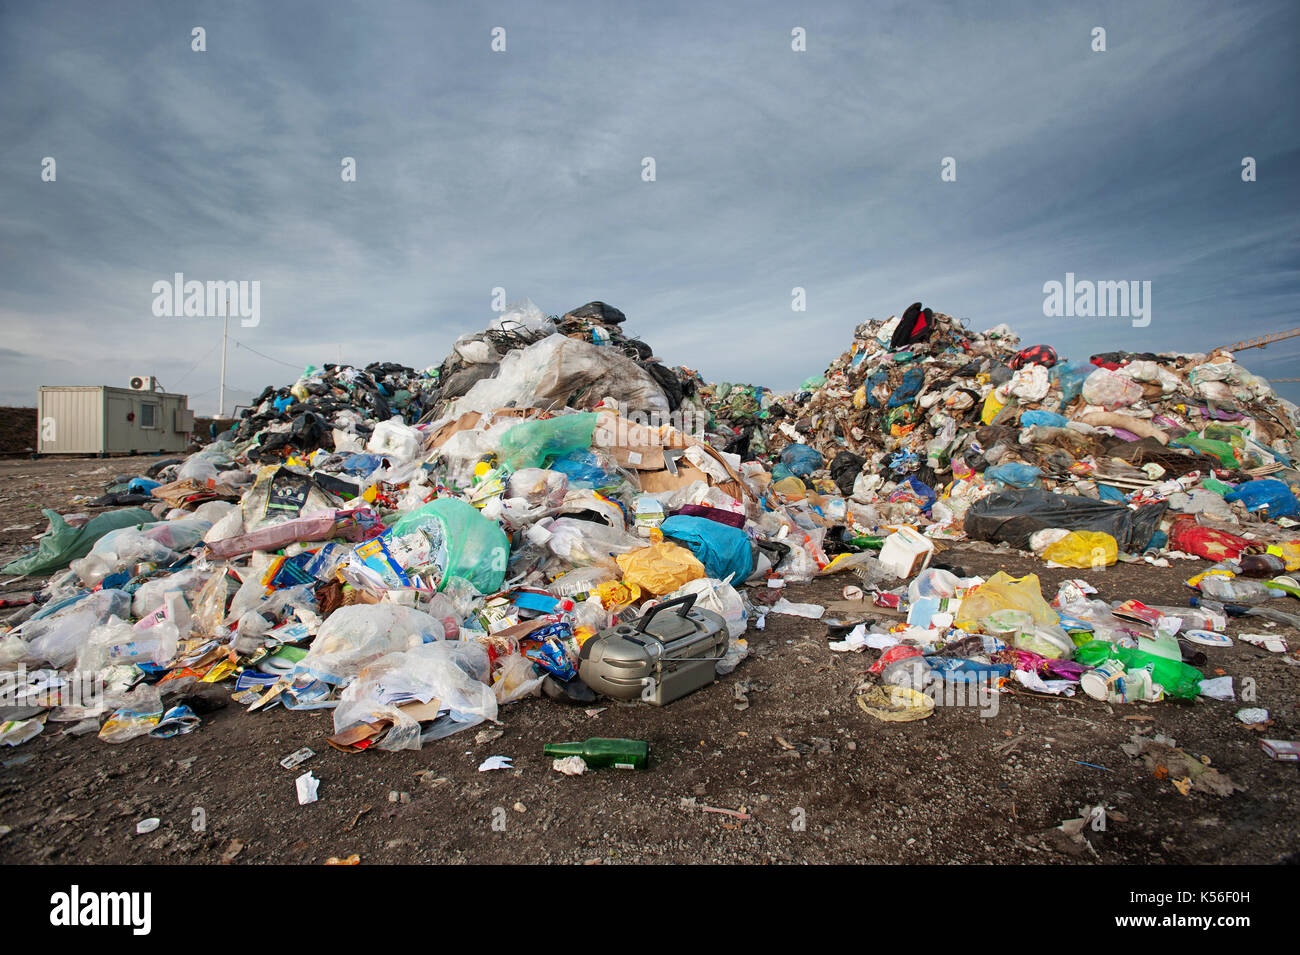 Pile of waste at city landfill. Waste management, ecology concept - Stock Image